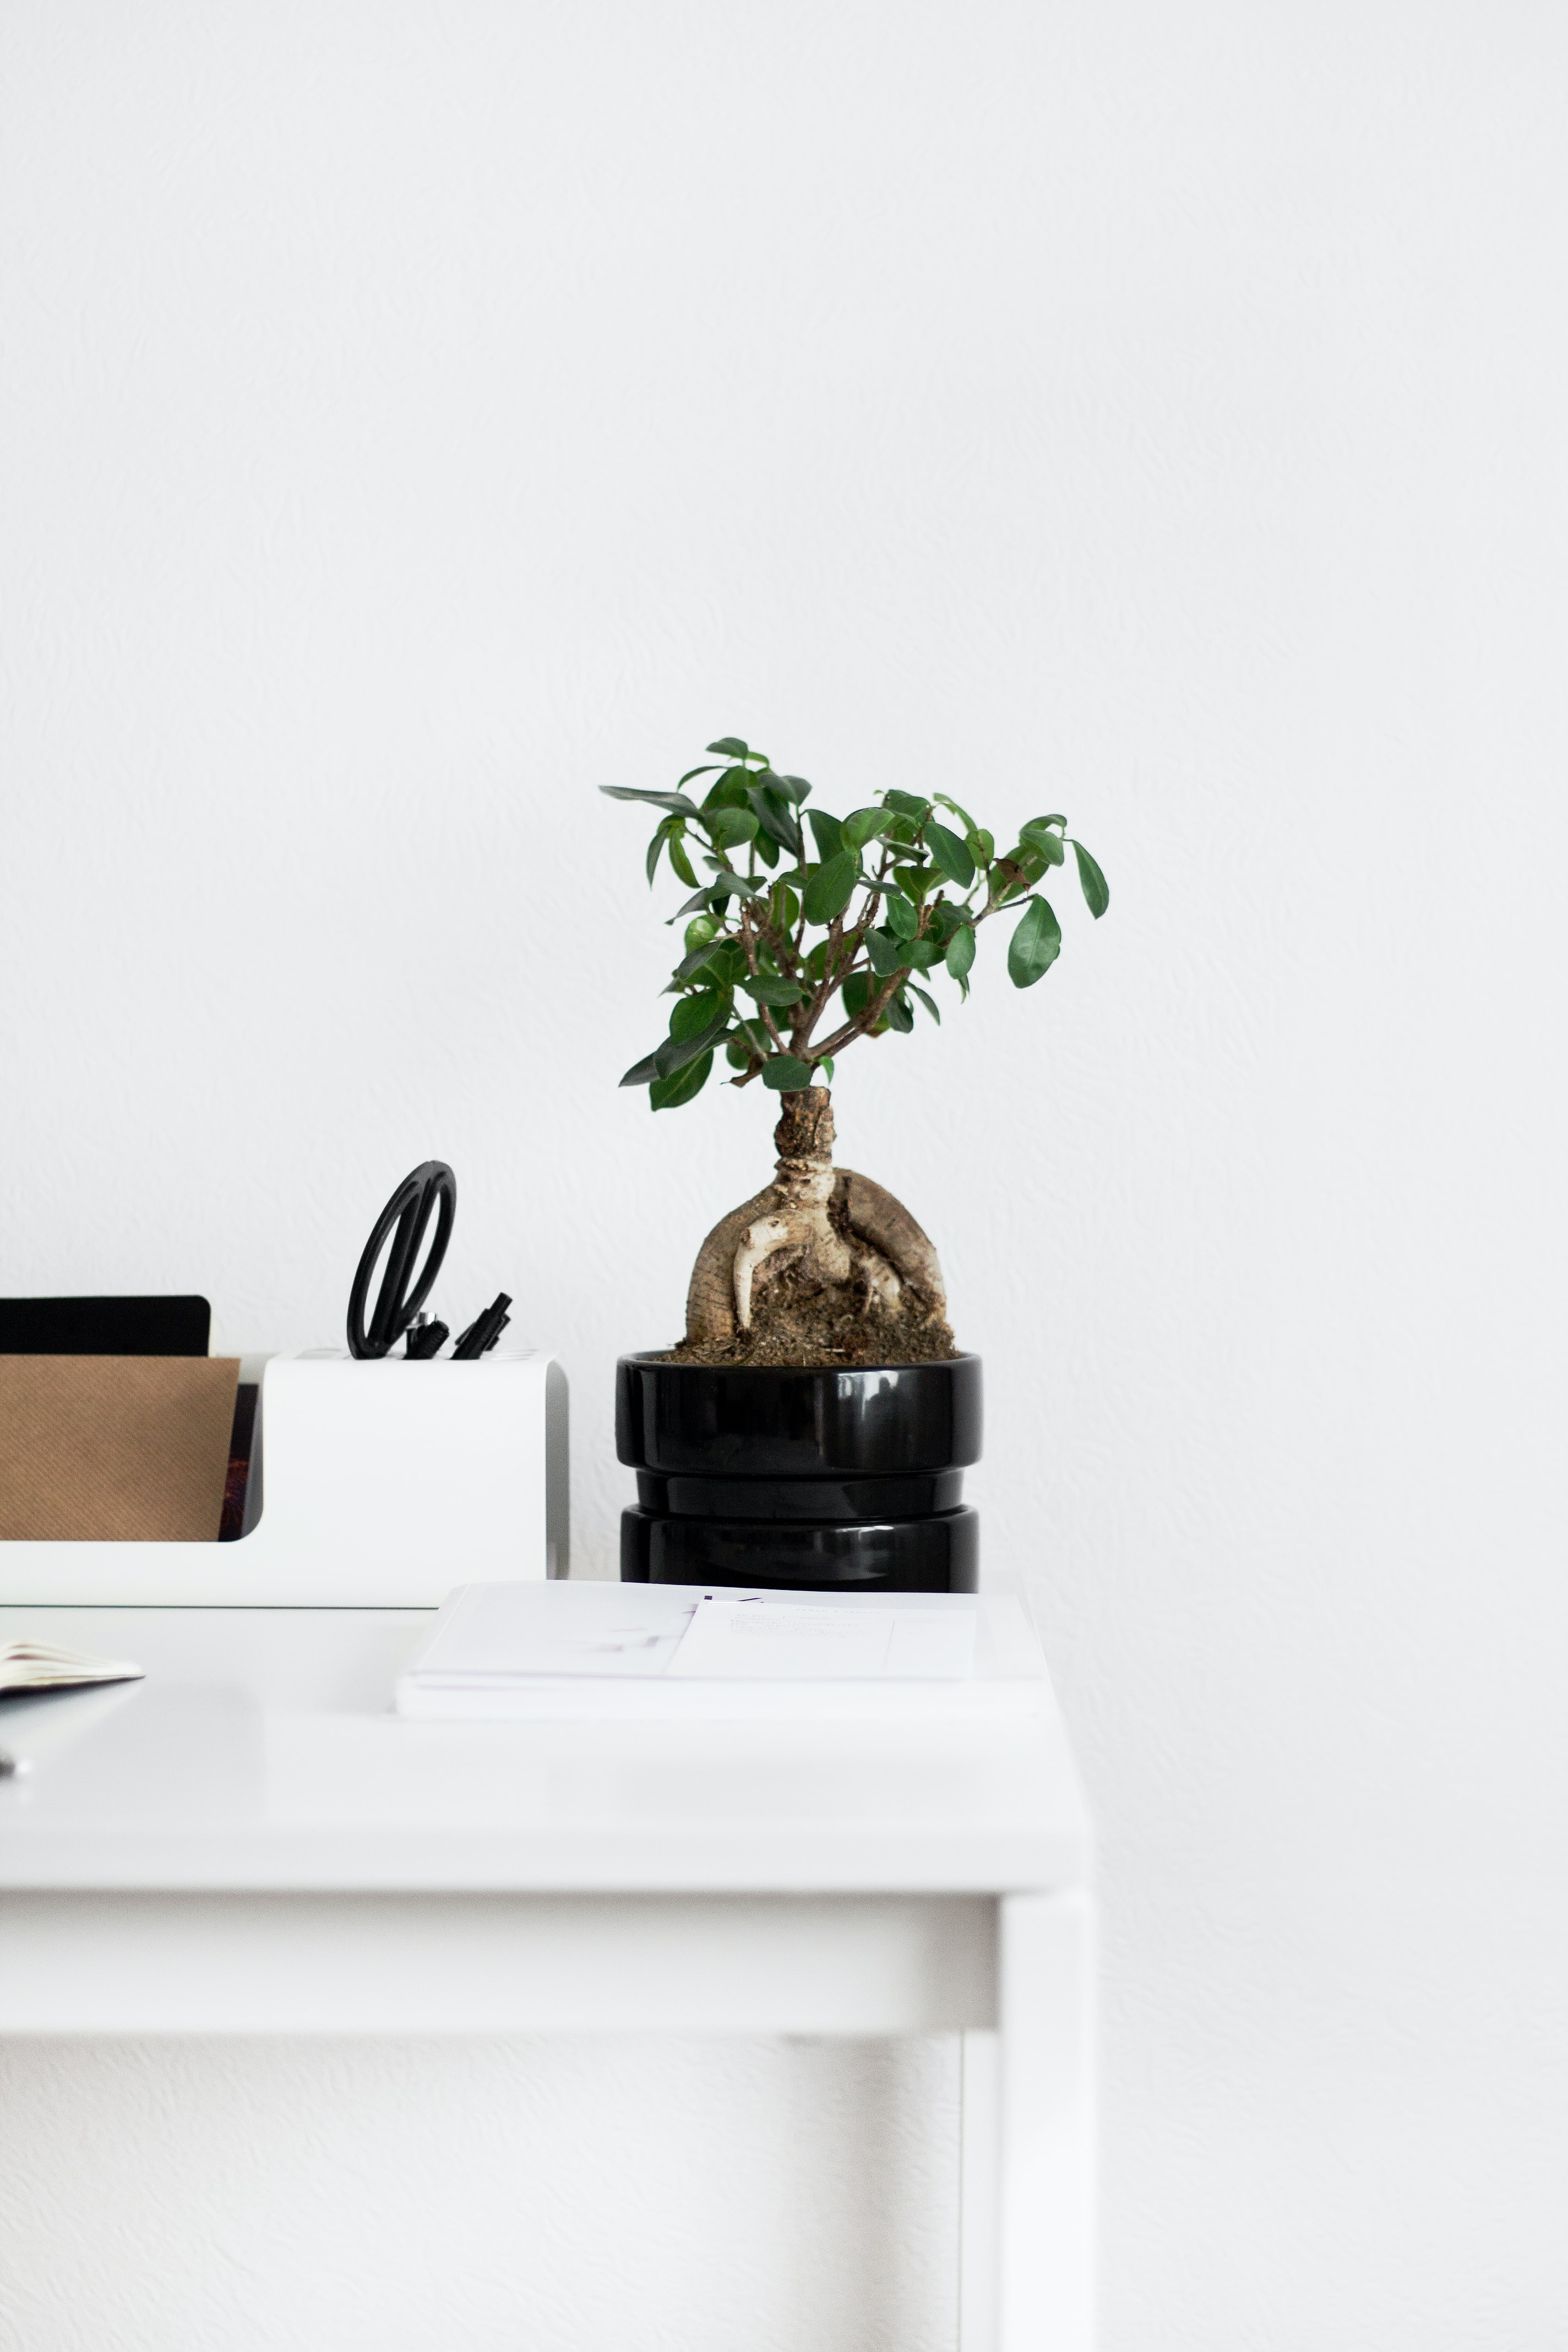 A small bonsai tree in a black flowerpot on a white table